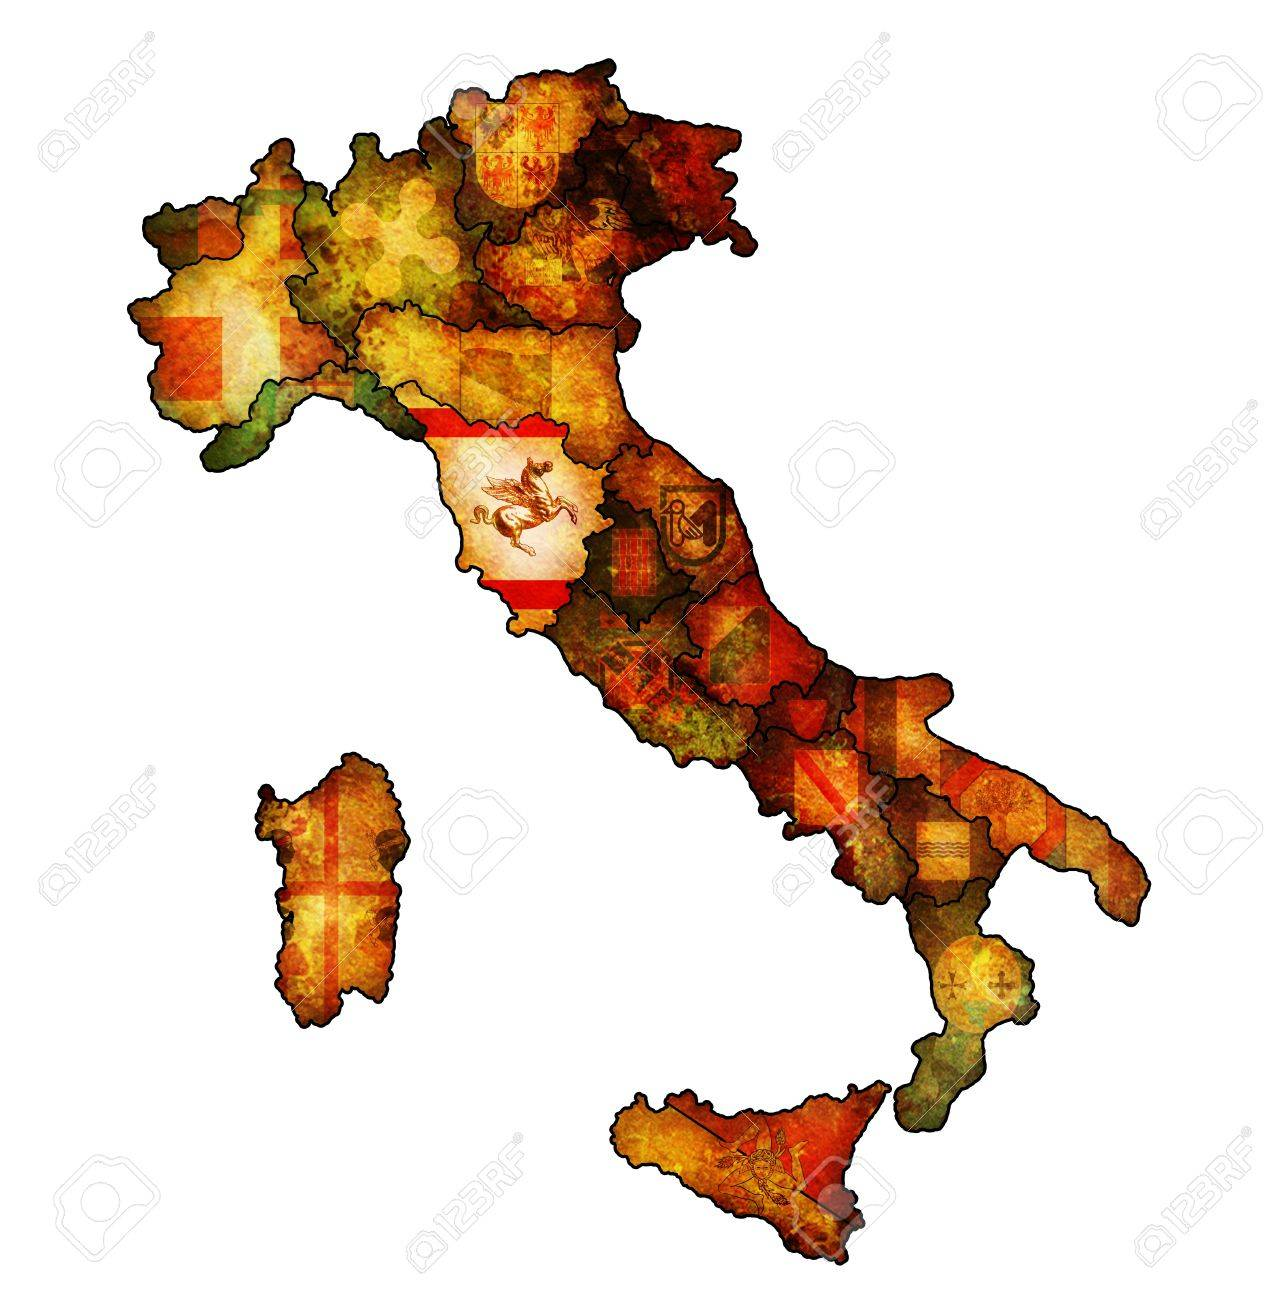 Map Of Italy Tuscany Region.Tuscany Region On Administration Map Of Italy With Flags